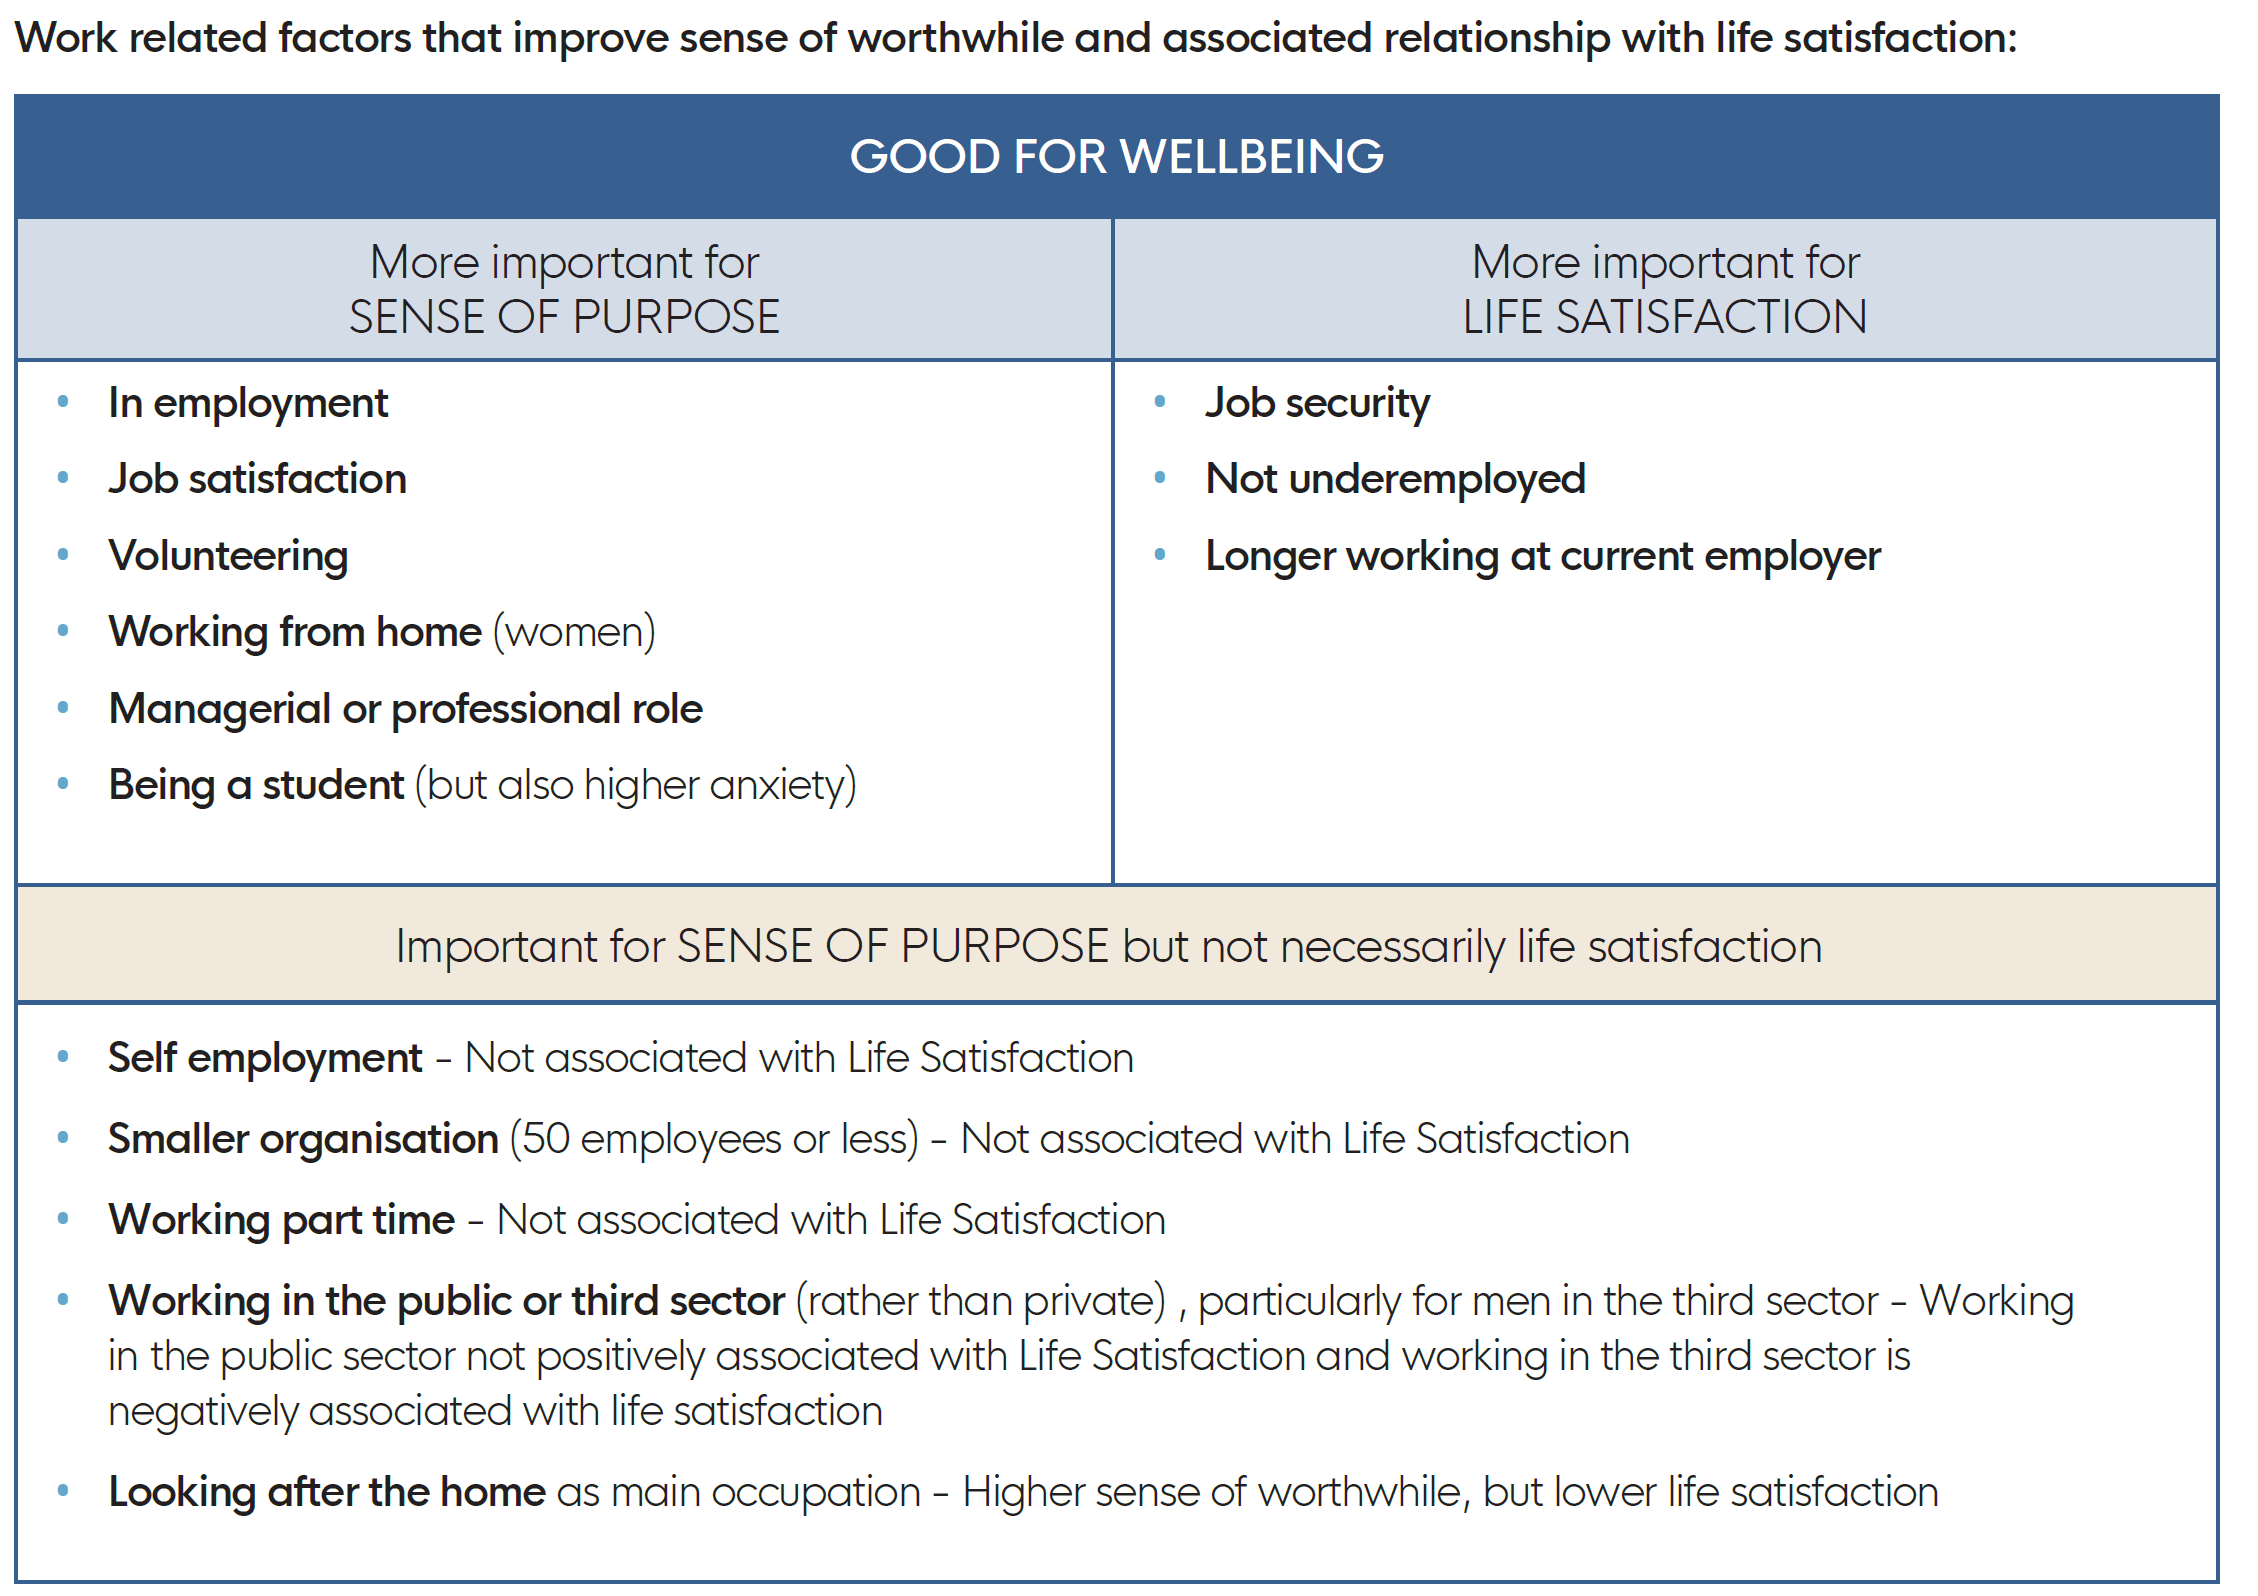 Table showing the role of work in our sense of purpose versus life satisfaction